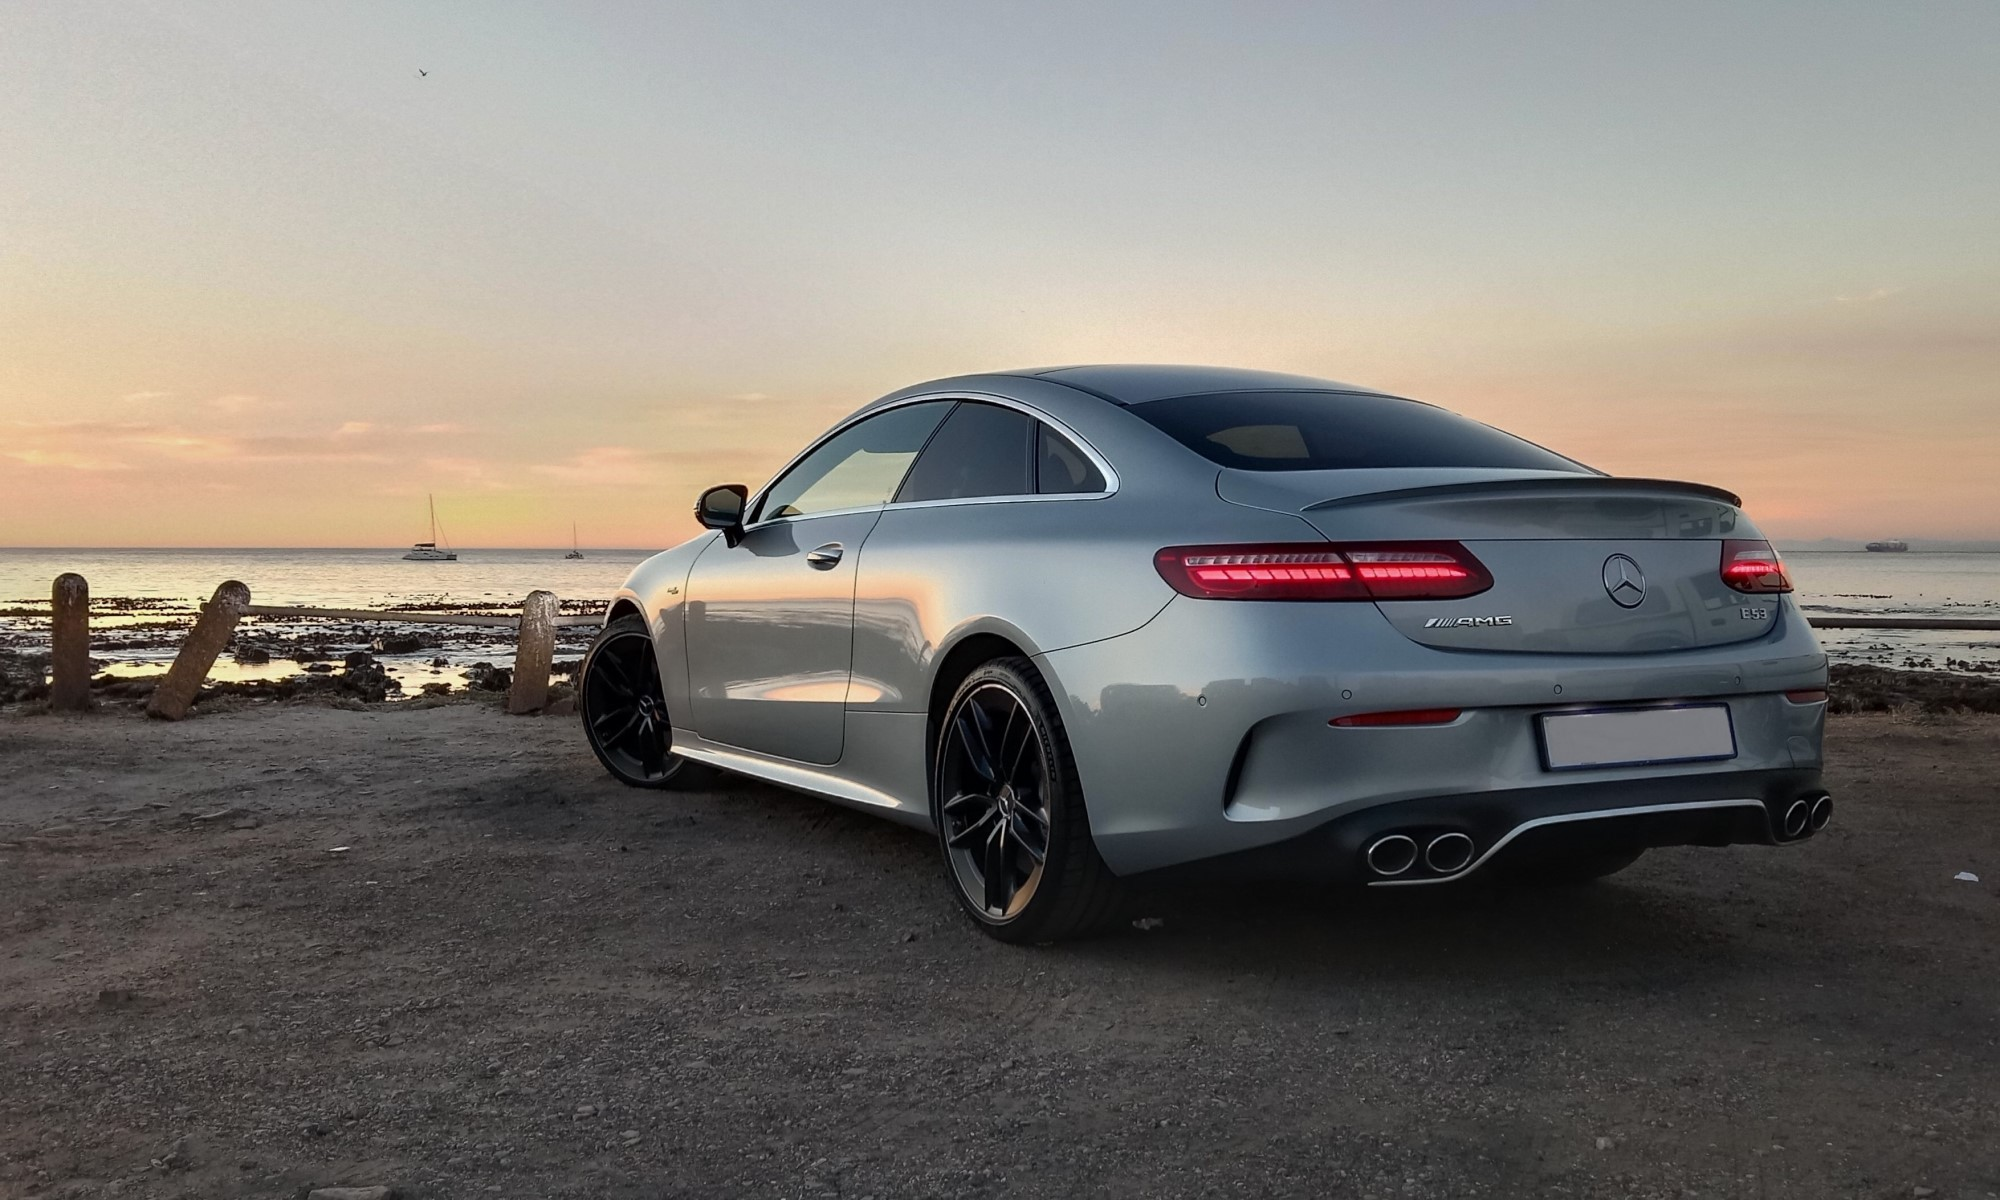 Mercedes-AMG E53 Coupe rear